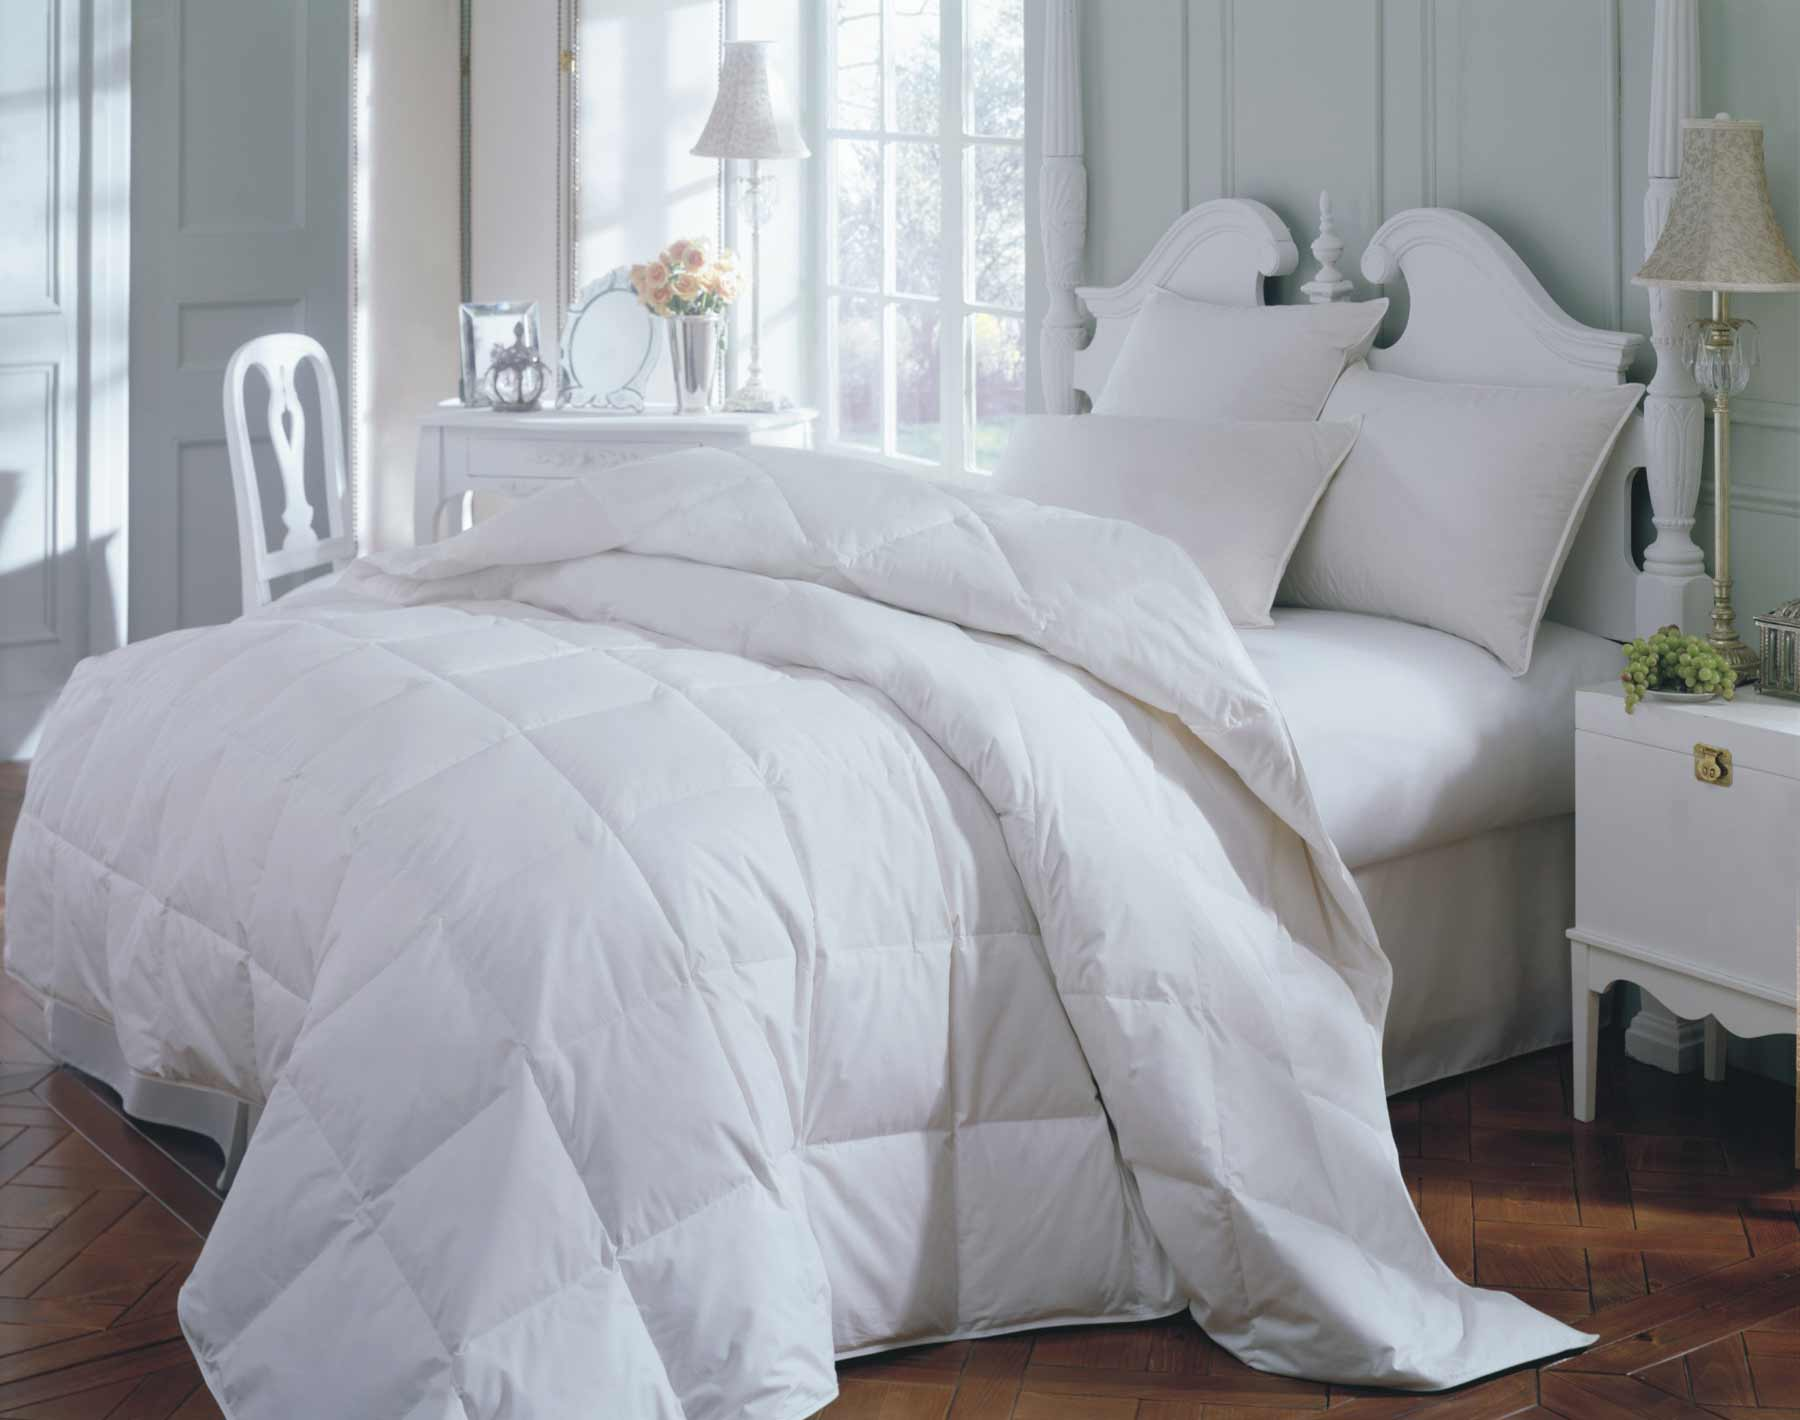 Summer Breeze Bedskirt Comforter in Queen Size